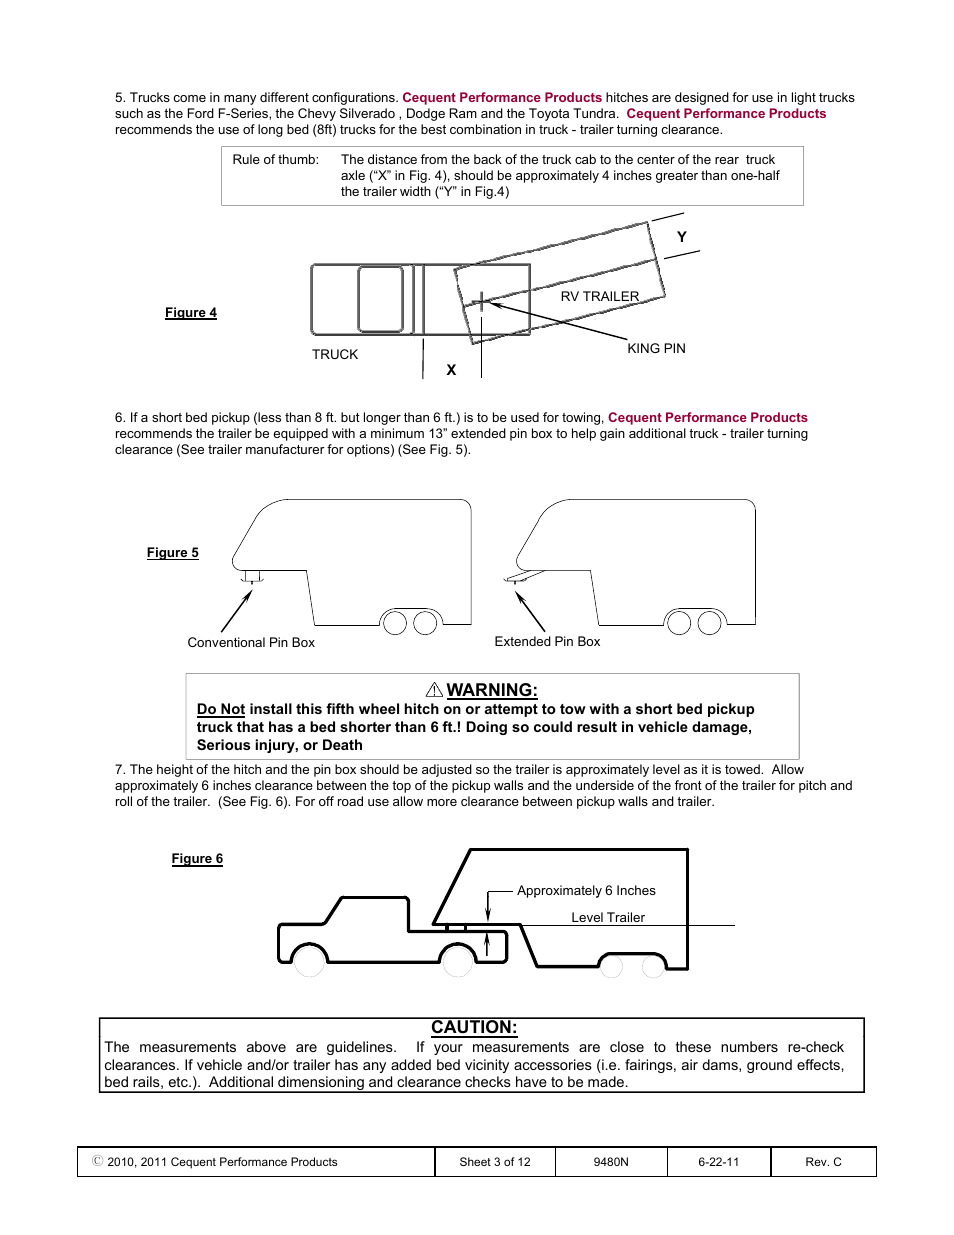 Warning, Caution | Draw-Tite 9480 HIDE-A-GOOSE FIFTH WHEEL ADAPTER User  Manual | Page 3 / 12